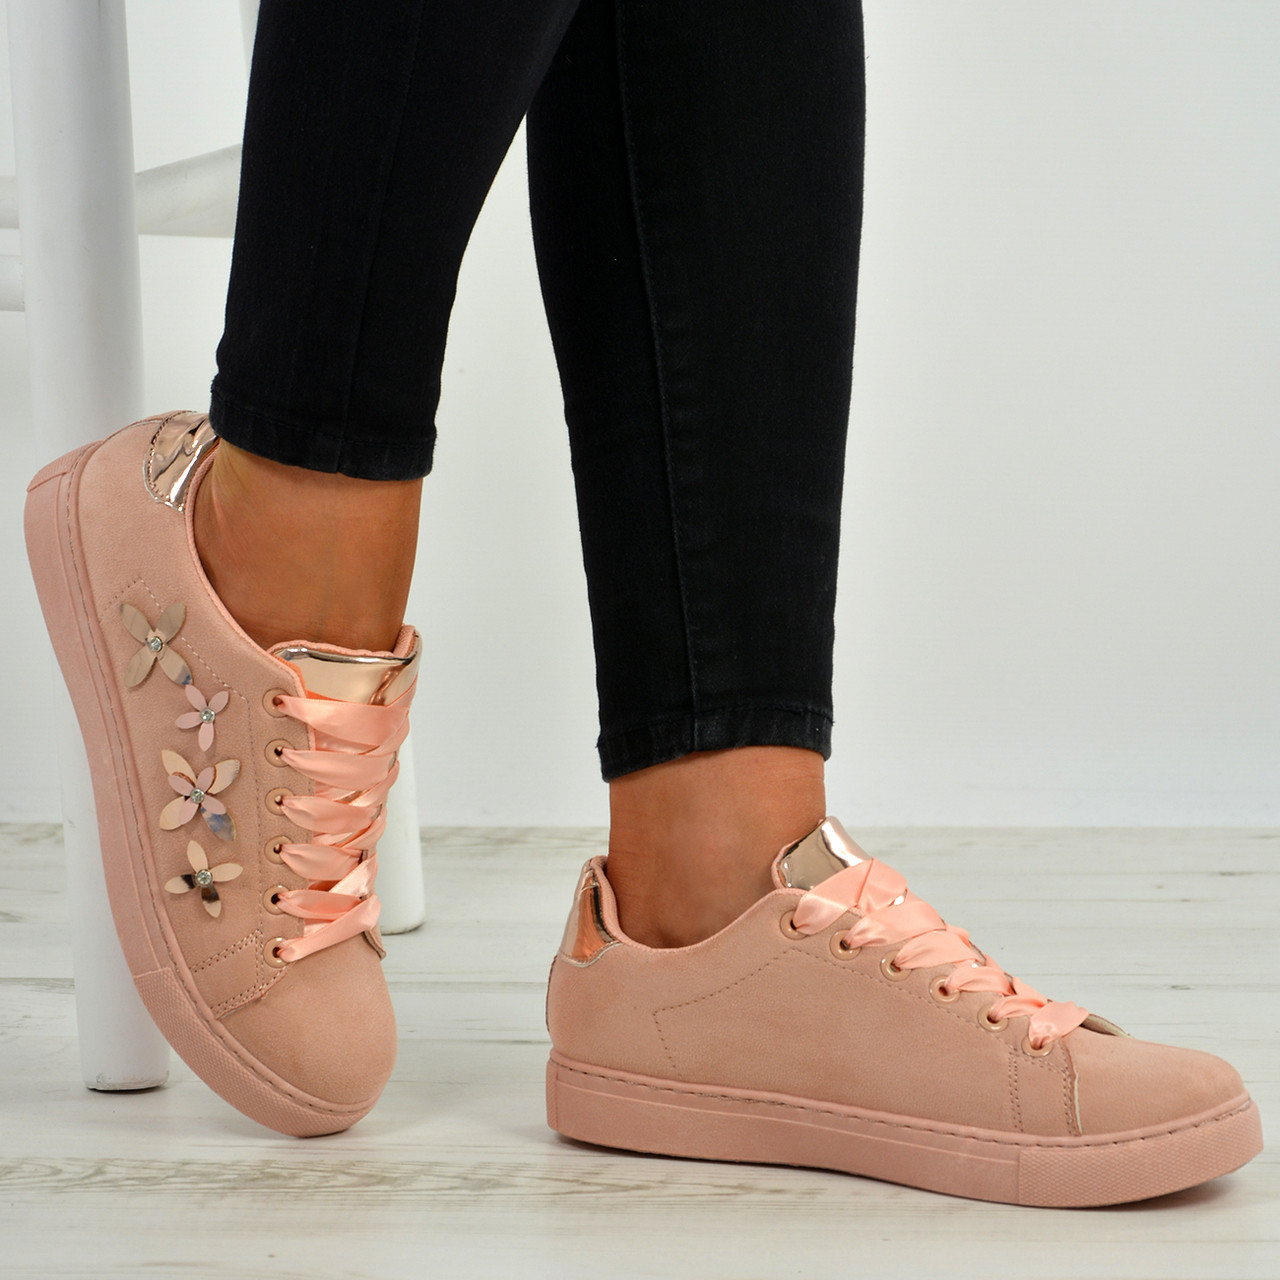 New Womens Lace Up Flower Trainers Ladies Studded Plimsoll Sneaker Shoes Size Uk